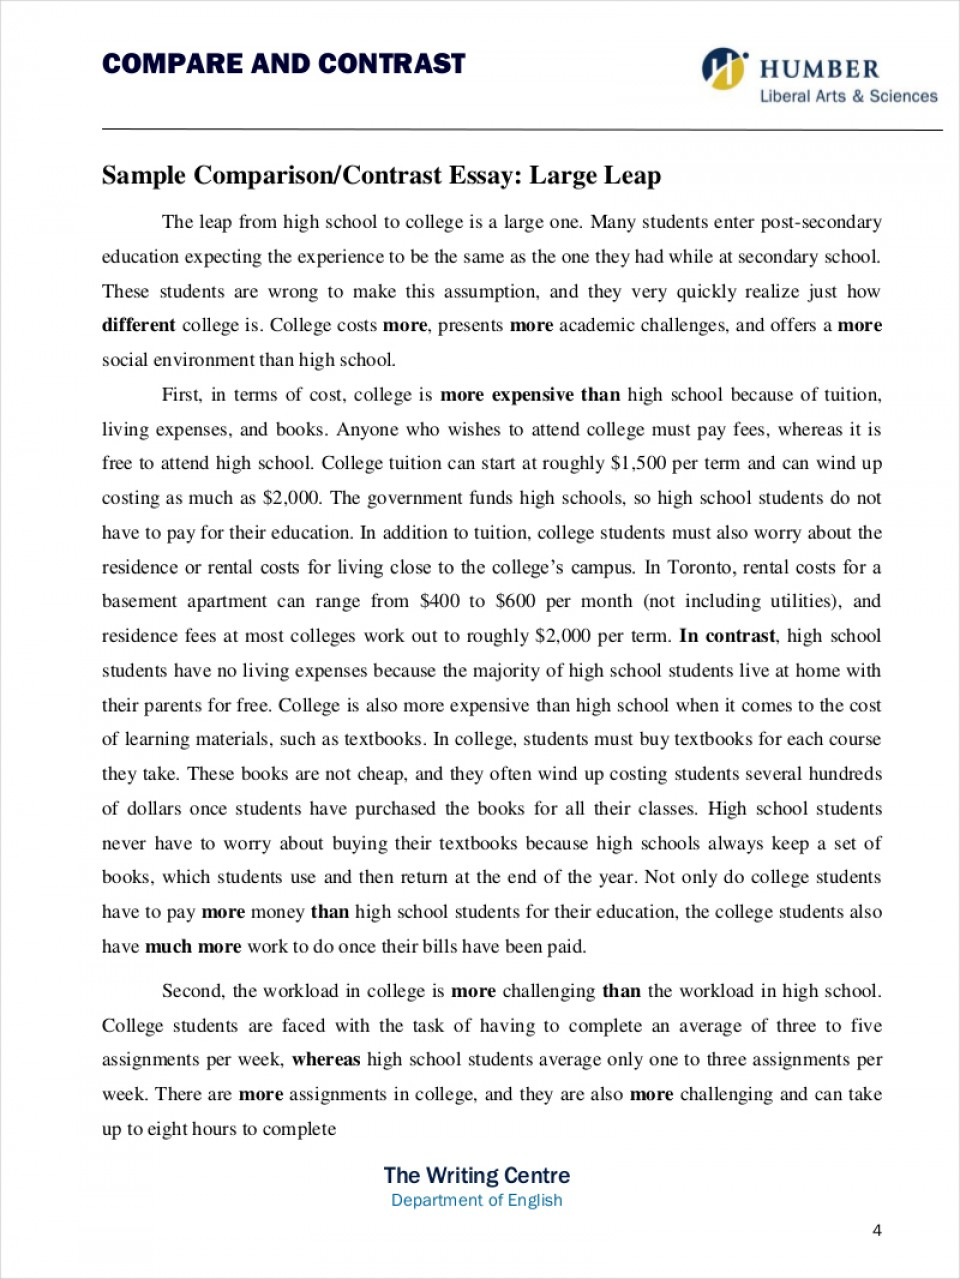 014 How To Write Compare And Contrast Essay Example Comparative Samples Free Pdf Format Download Throughout Examples Comparison Thesis Coles Thecolossus Co Within Ex Outstanding A Block Introduction Paragraph 960